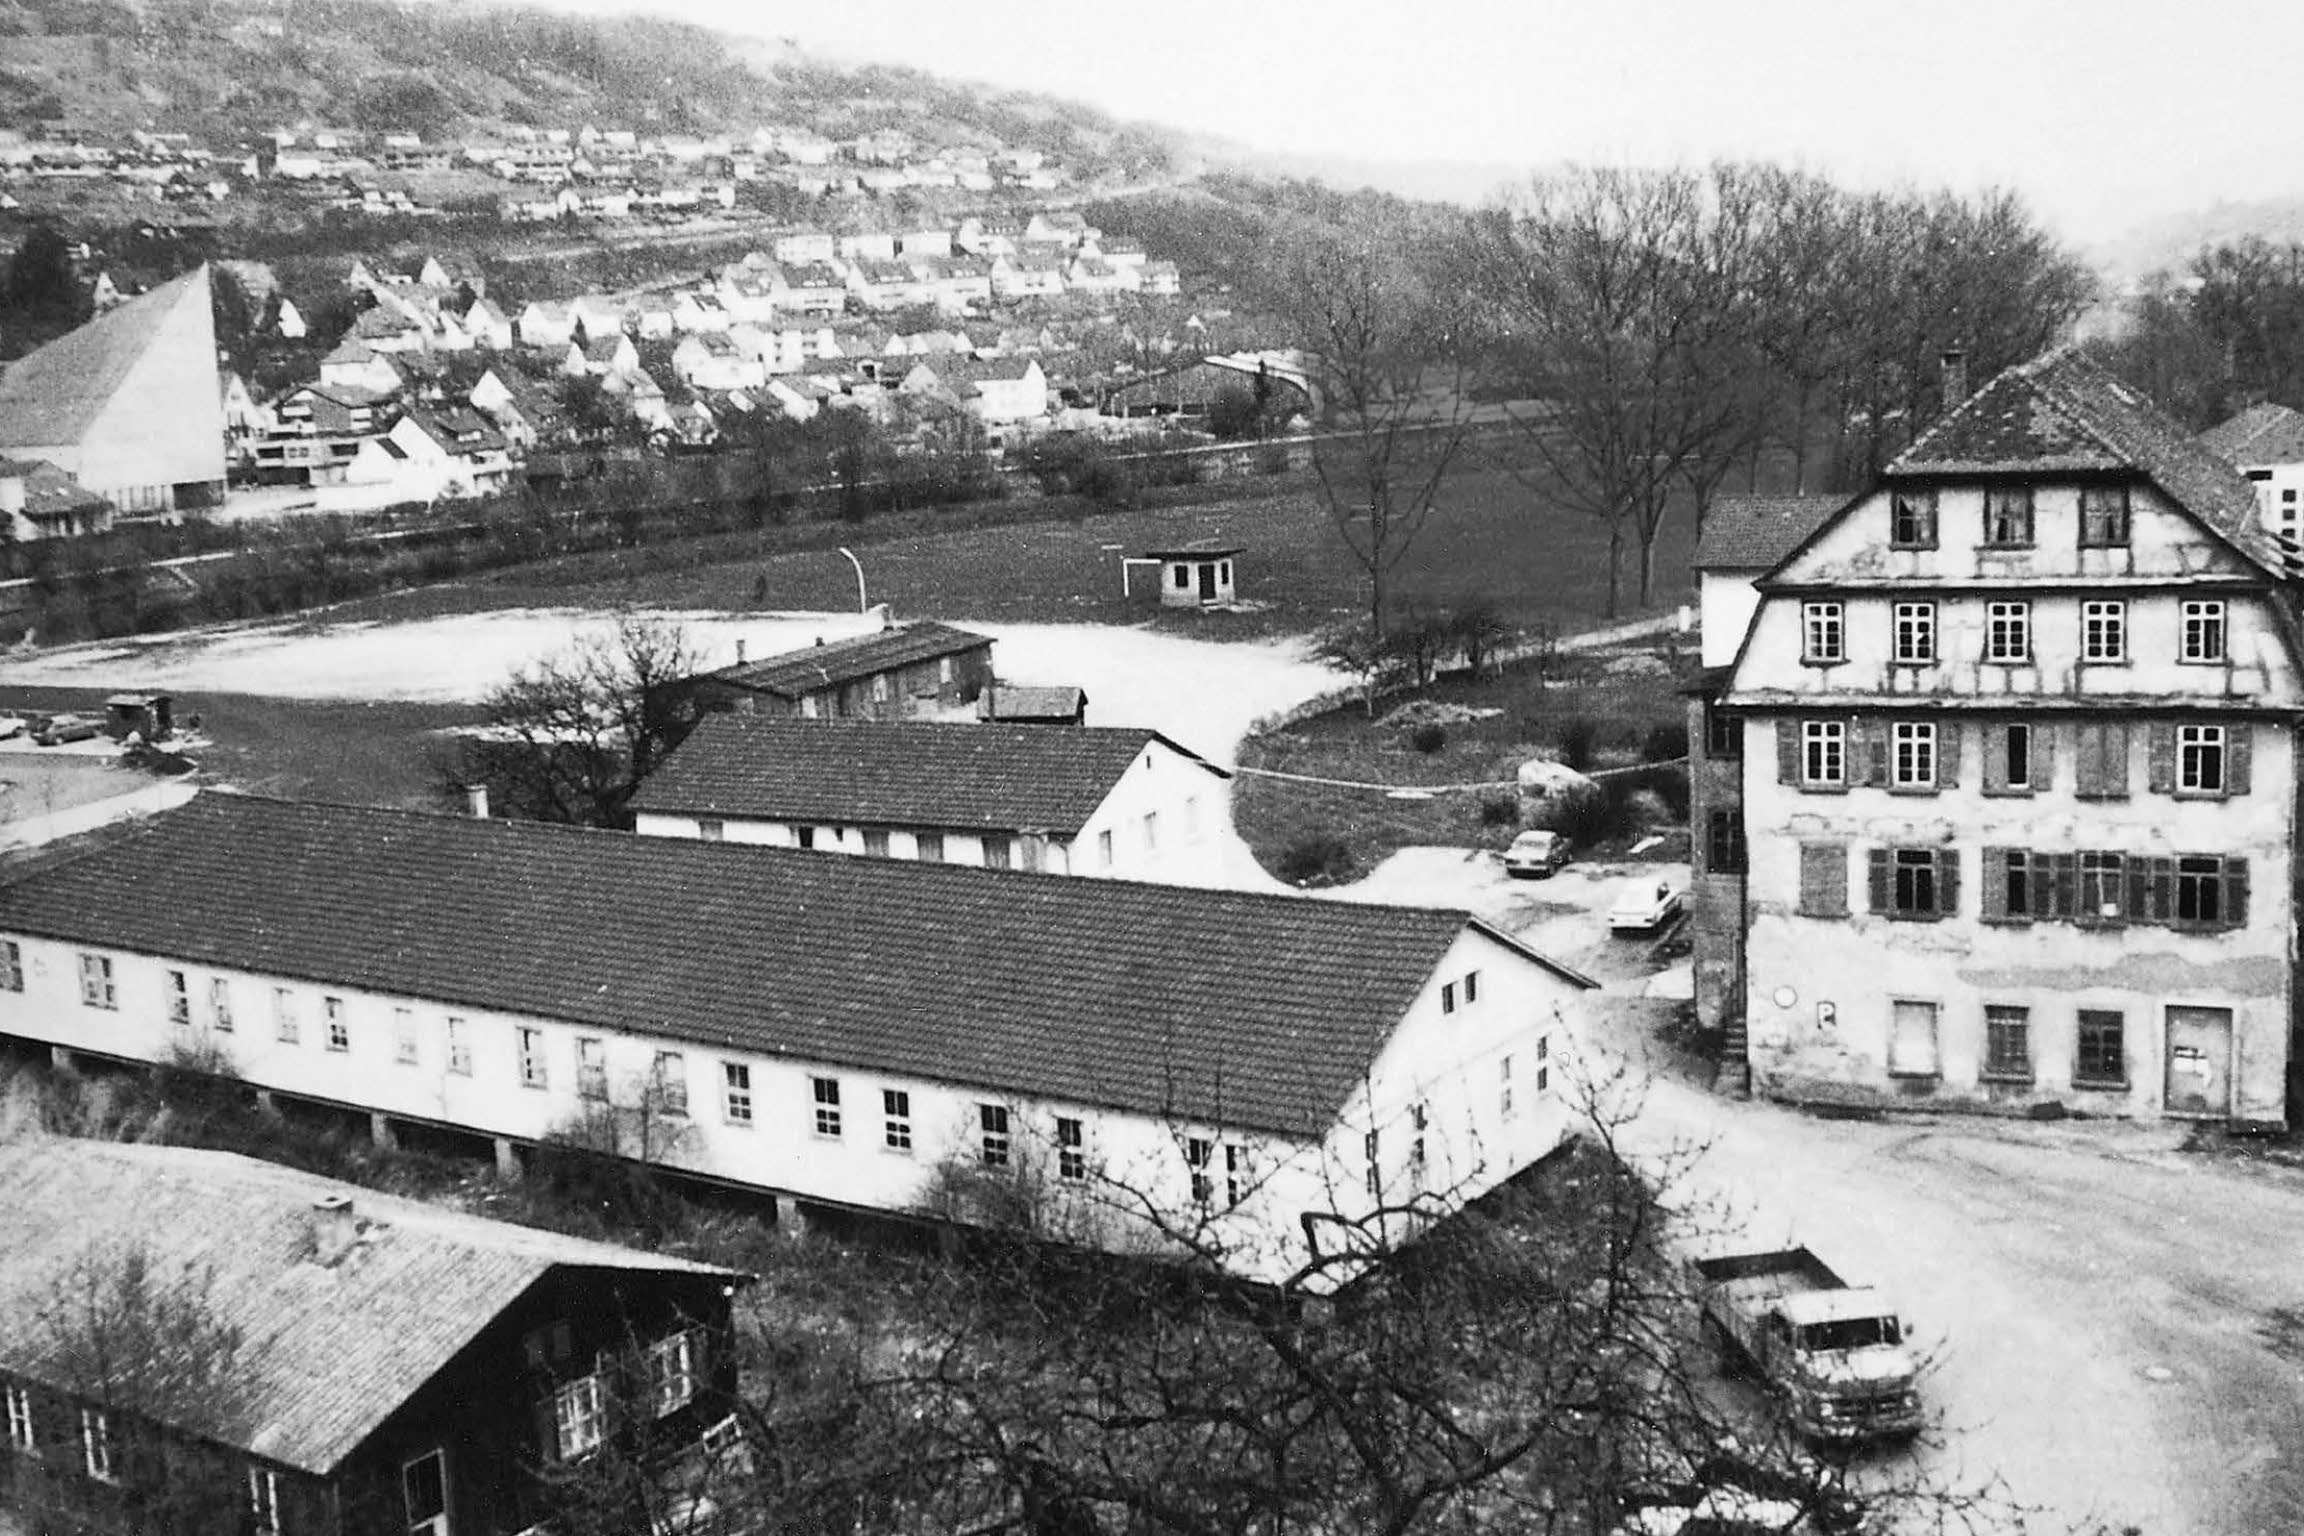 Adolf Würth set up a screw wholesale business back in 1945. After his father's sudden death in 1954, Reinhold Würth took over at the helm of the company, which was generating annual sales of EUR 80,000. Today, the company employs a global workforce of more than 74,000 employees at more than 400companies in over 80 countries, and generated sales of EUR 12.7 billion in 2017.